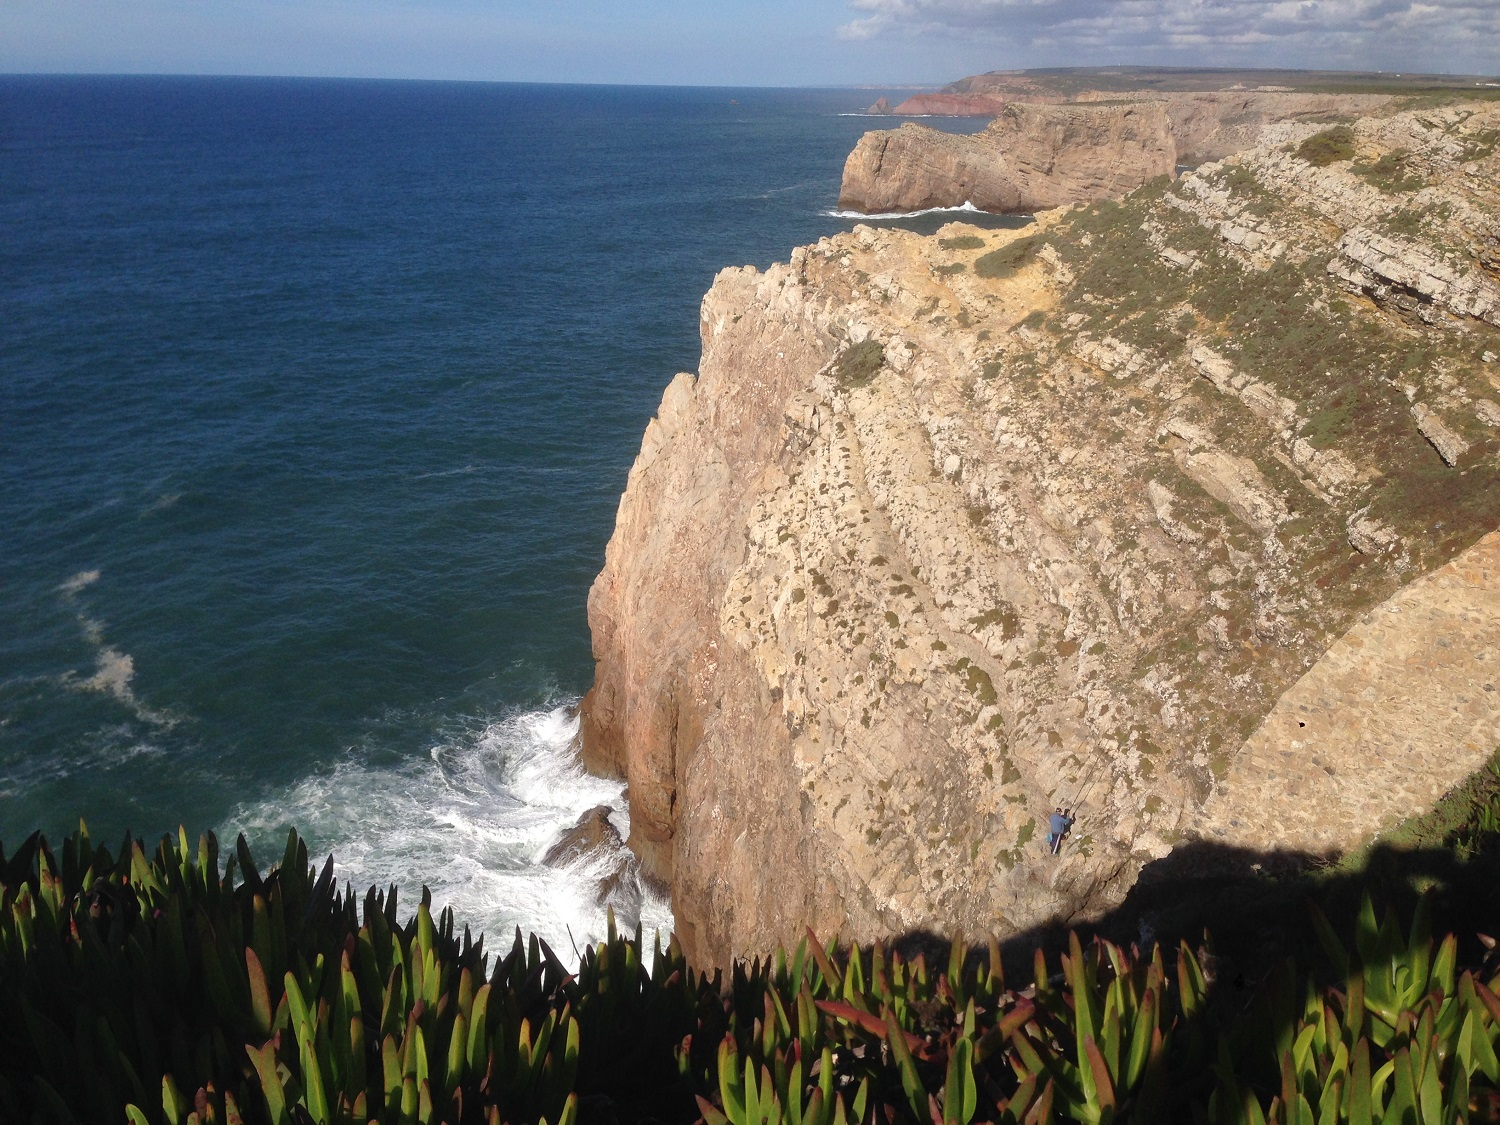 Fisherman on the cliff edge, Algarve Walks, Great Circle Route